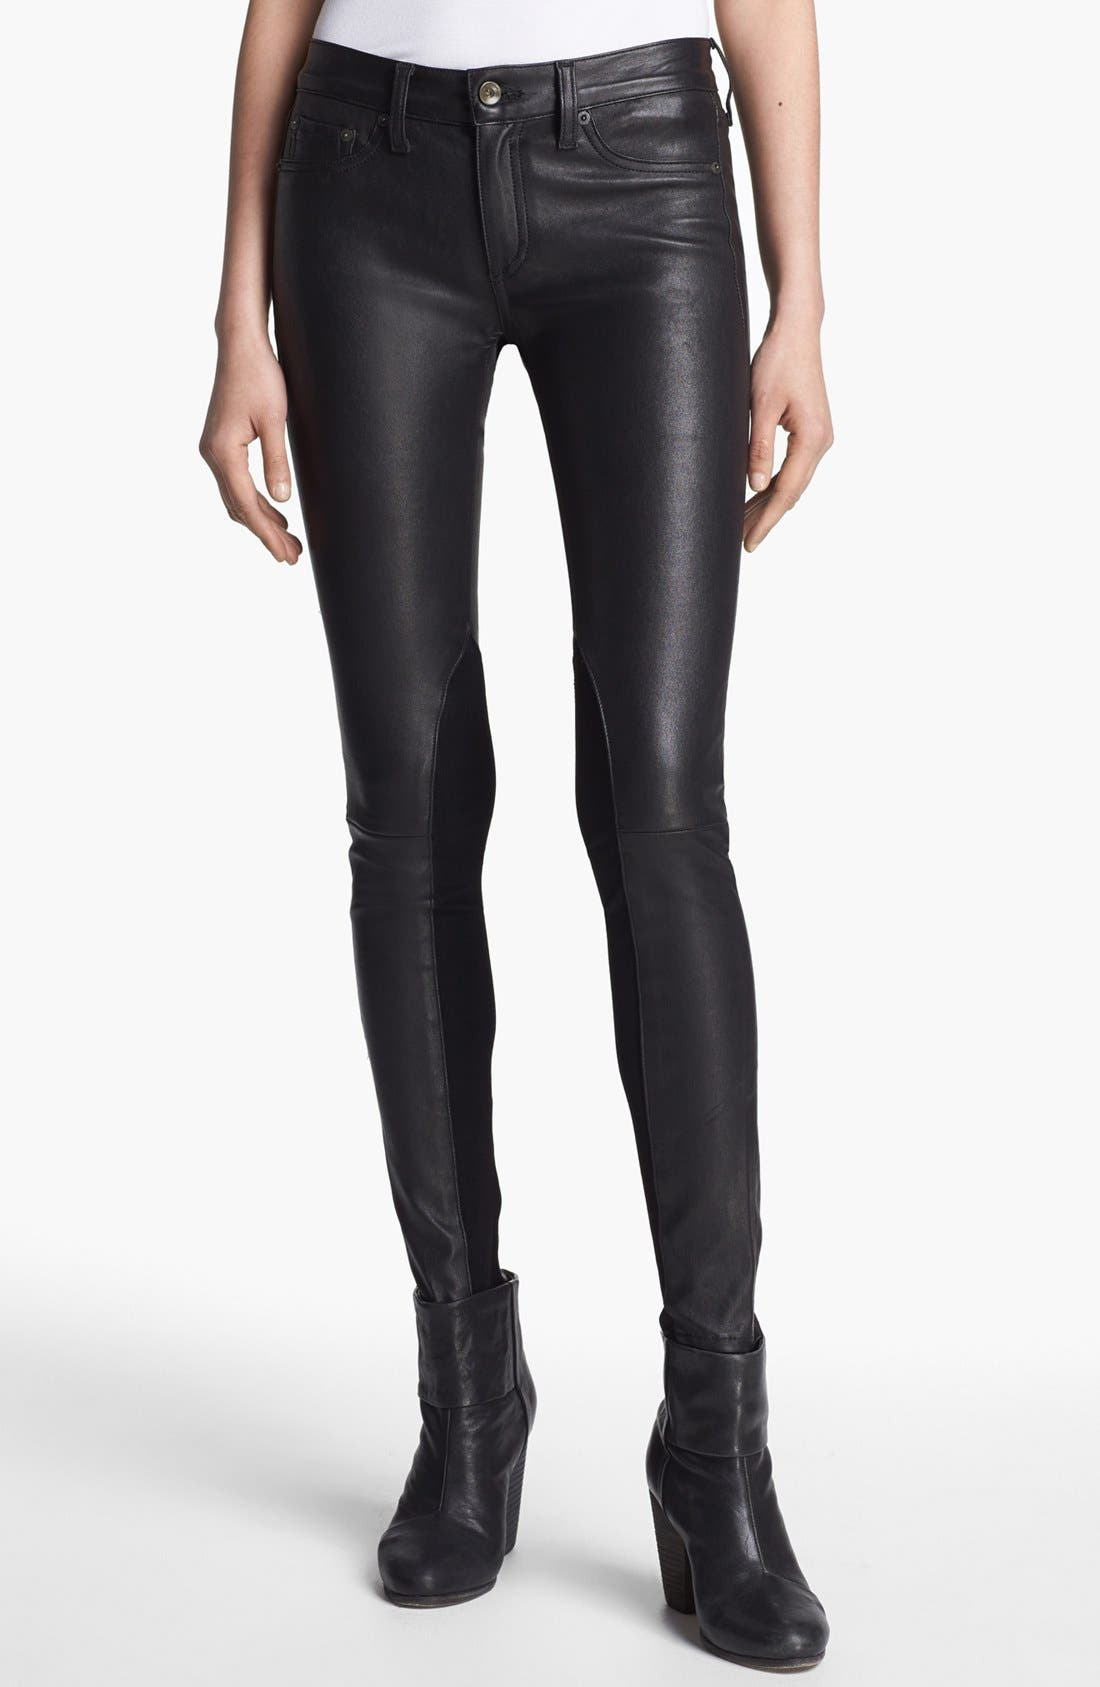 Main Image - rag & bone/JEAN 'The Reverse' Leather Pants